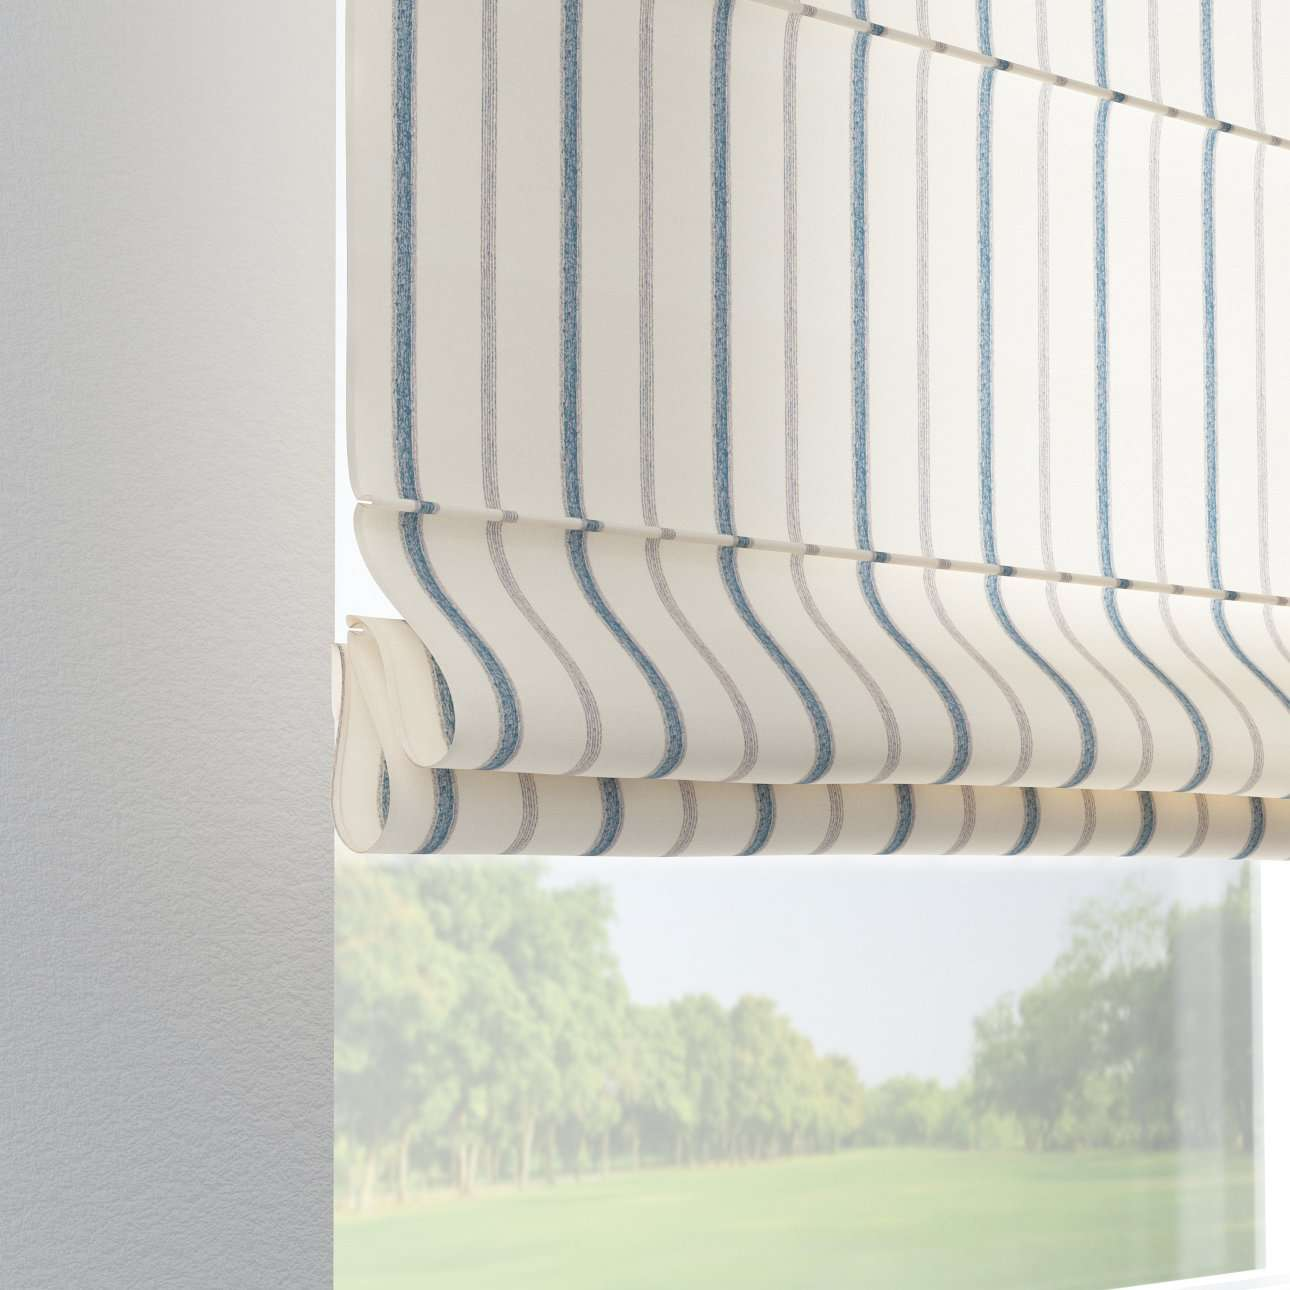 Verona tab top roman blind 80 x 170 cm (31.5 x 67 inch) in collection Avinon, fabric: 129-66